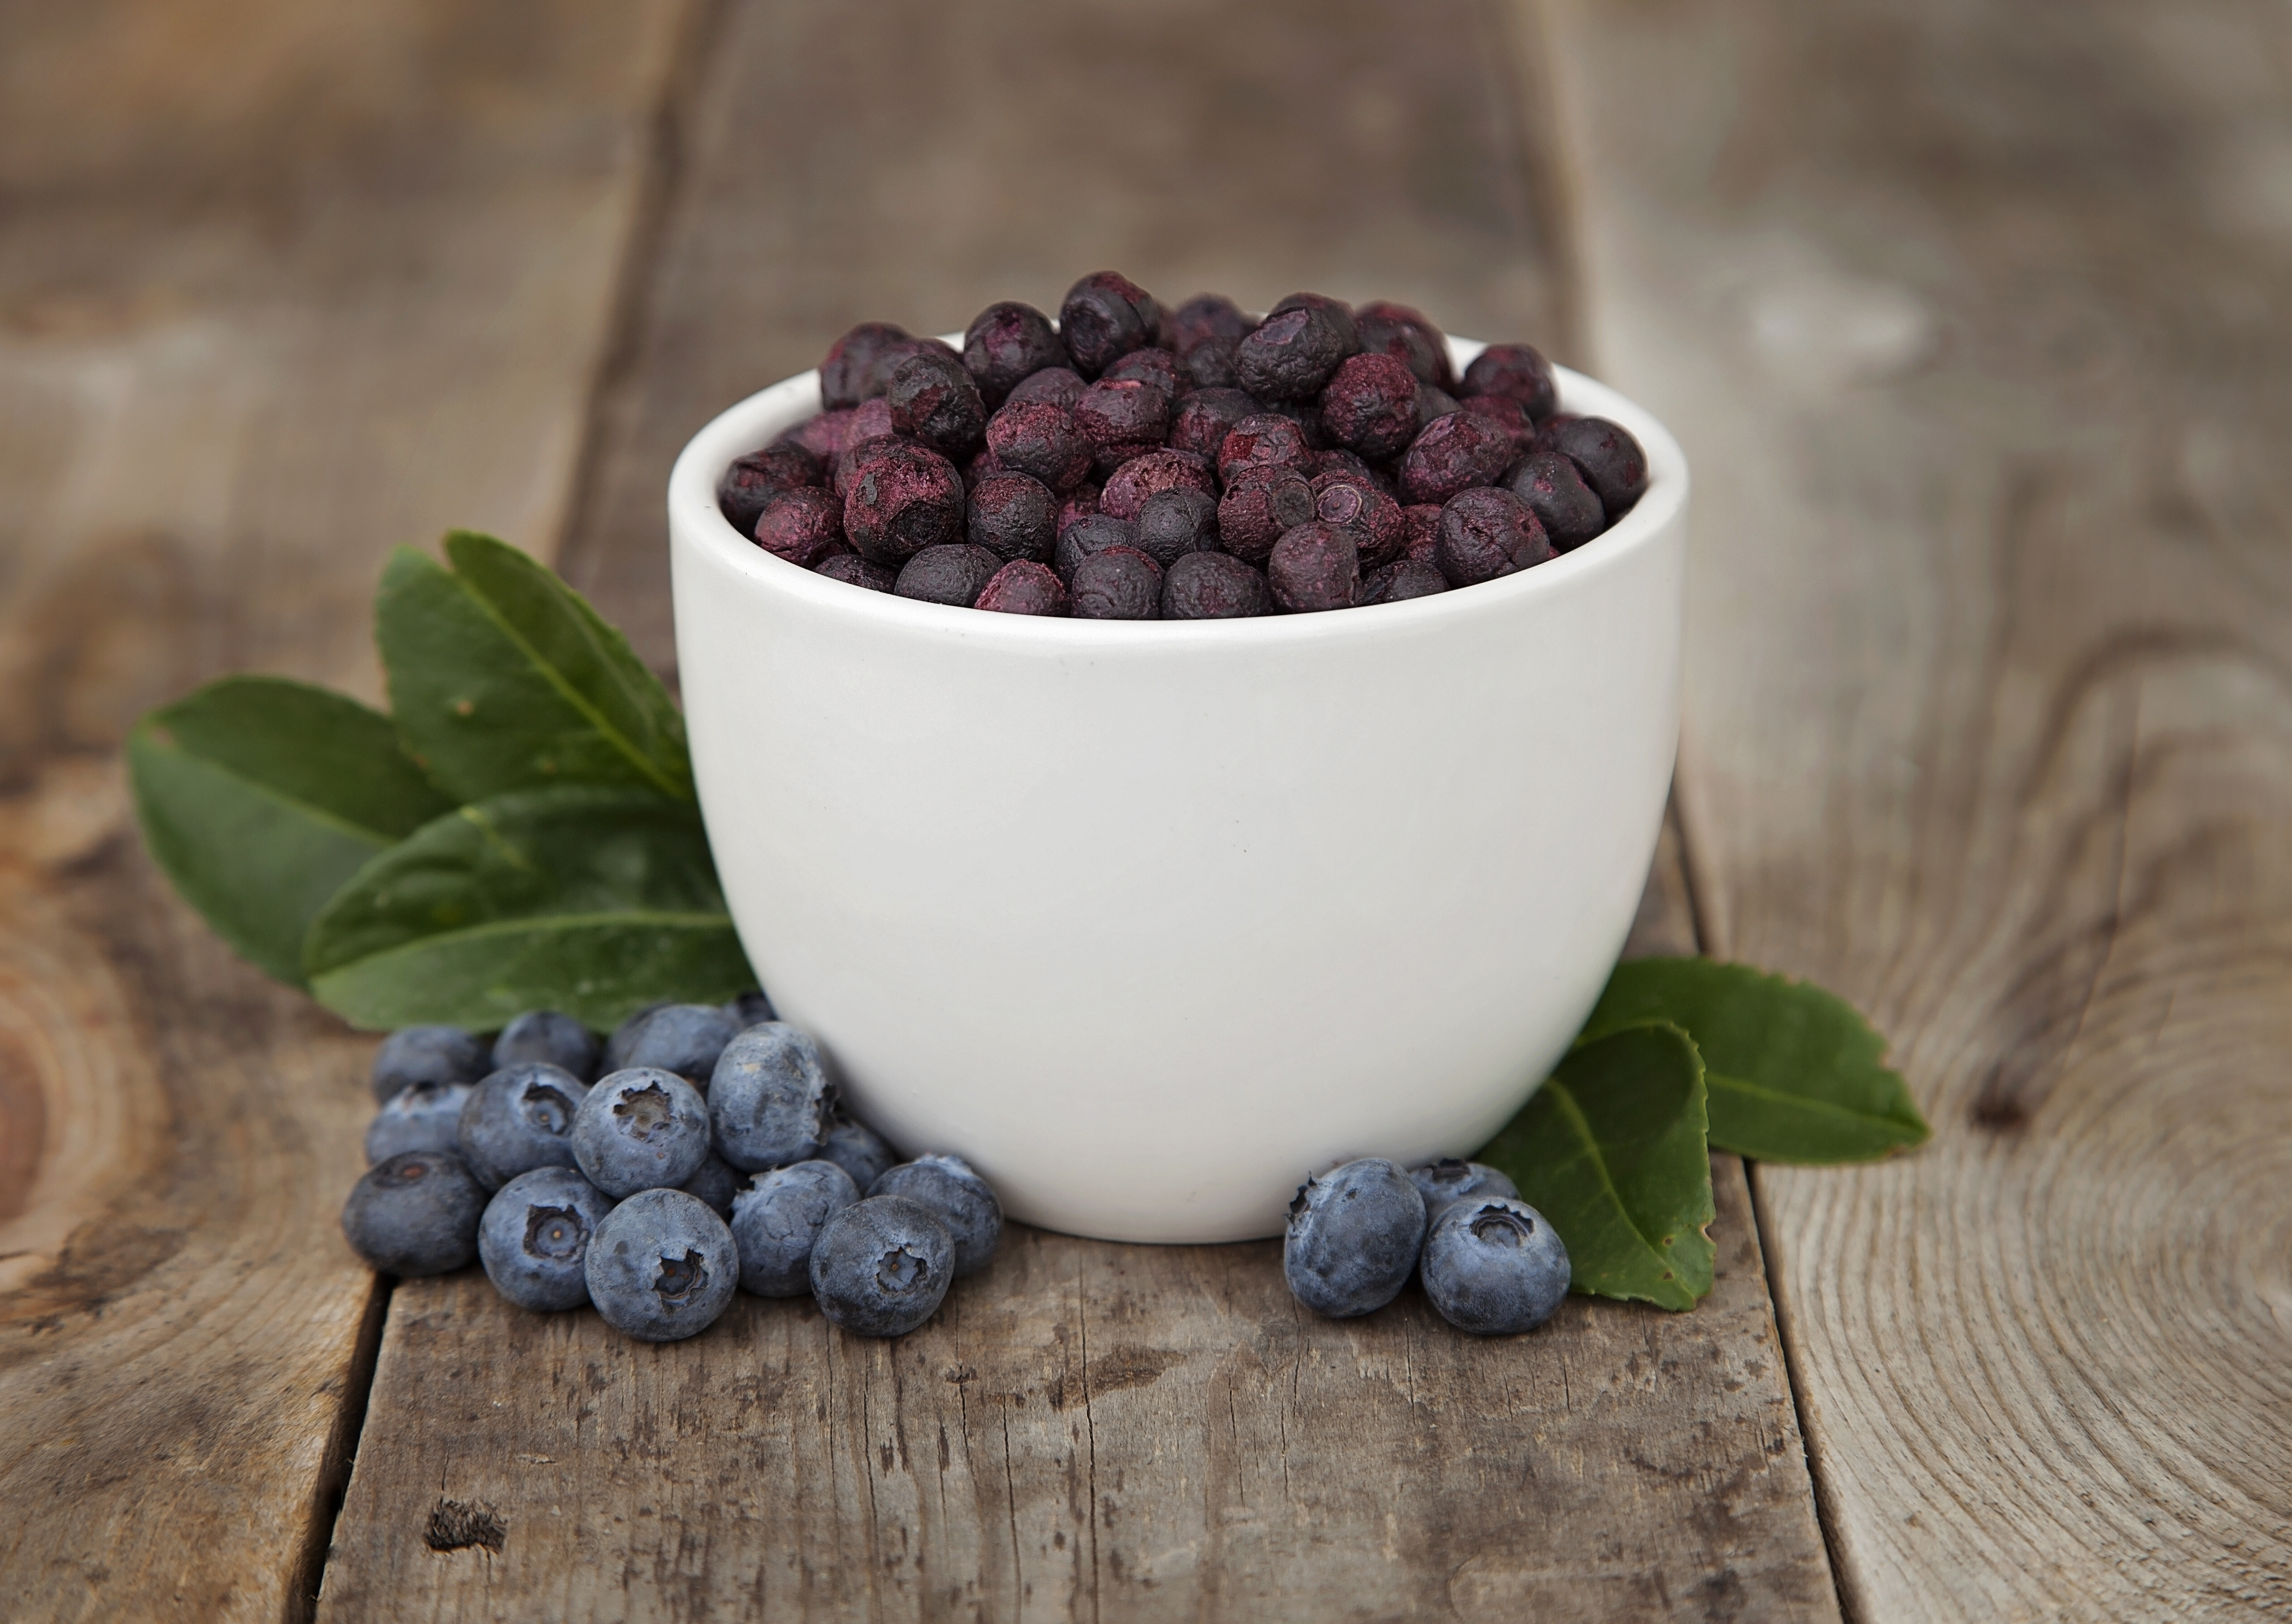 Freeze Dried Blueberries Valley Food Storage Whole Healthy Blueberries great for snacking Emergency food that is great for cooking &... by Valley Food Storage